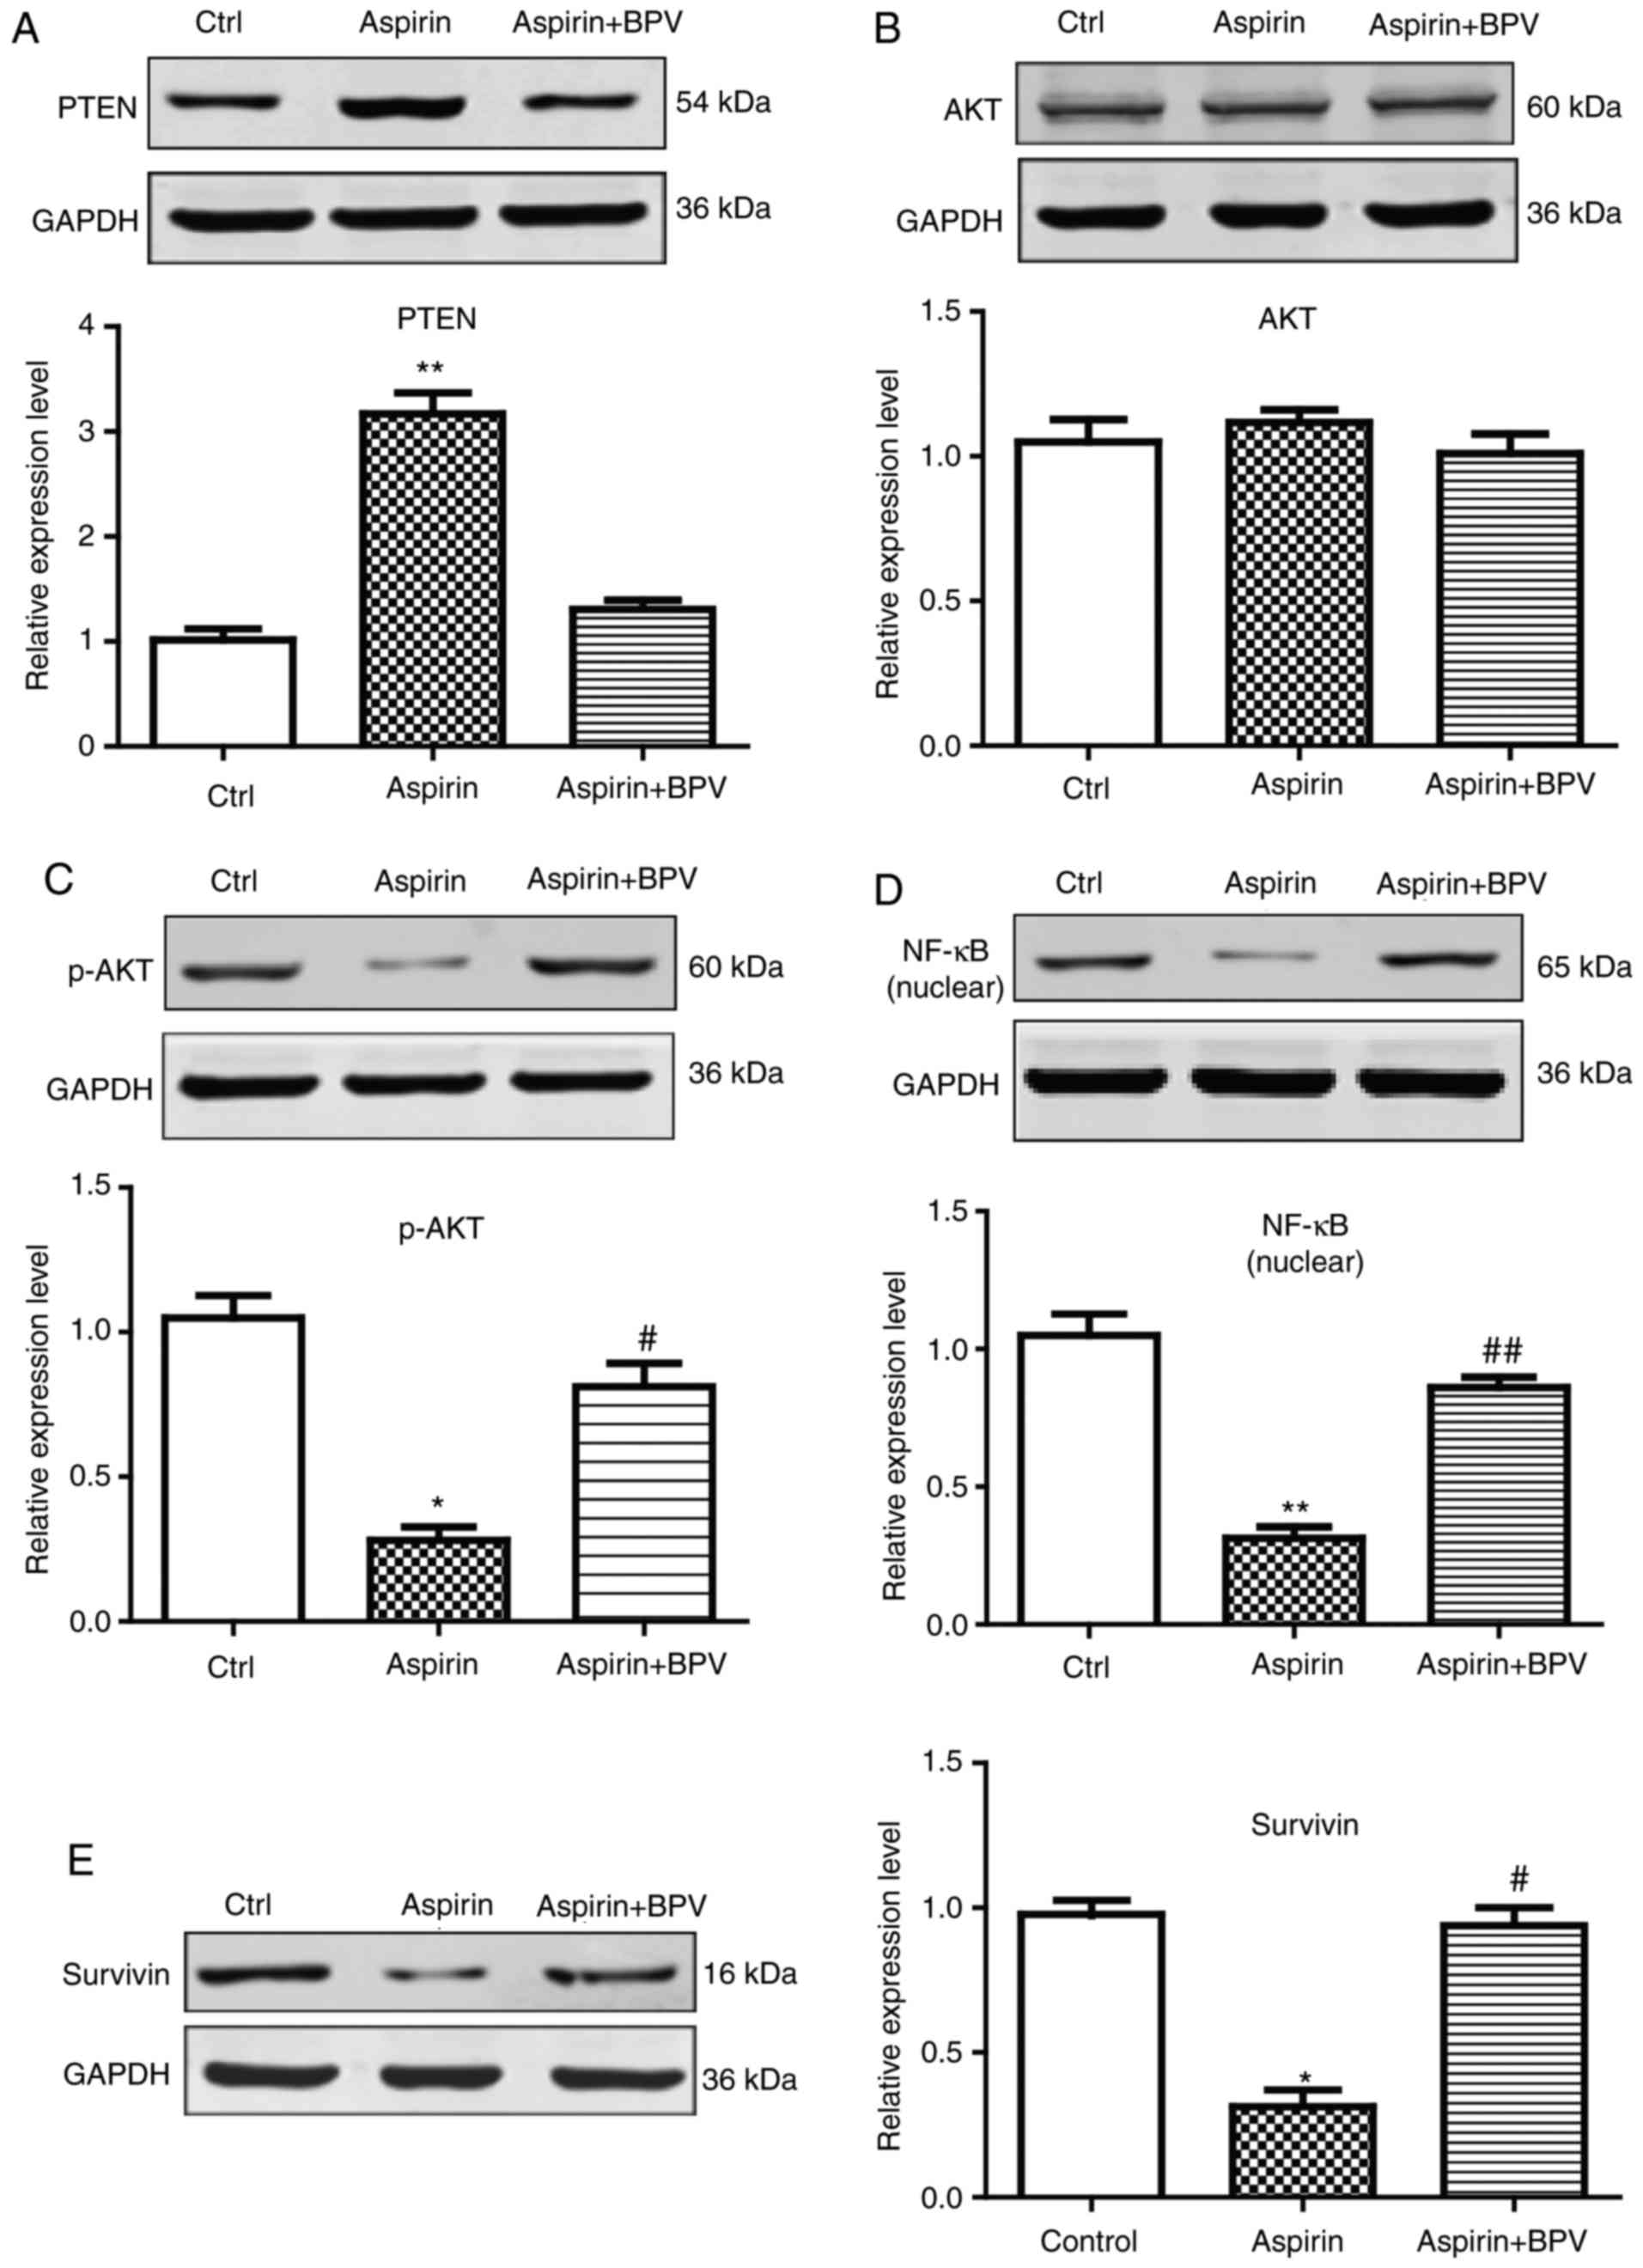 Effects of aspirin on proliferation, invasion and apoptosis